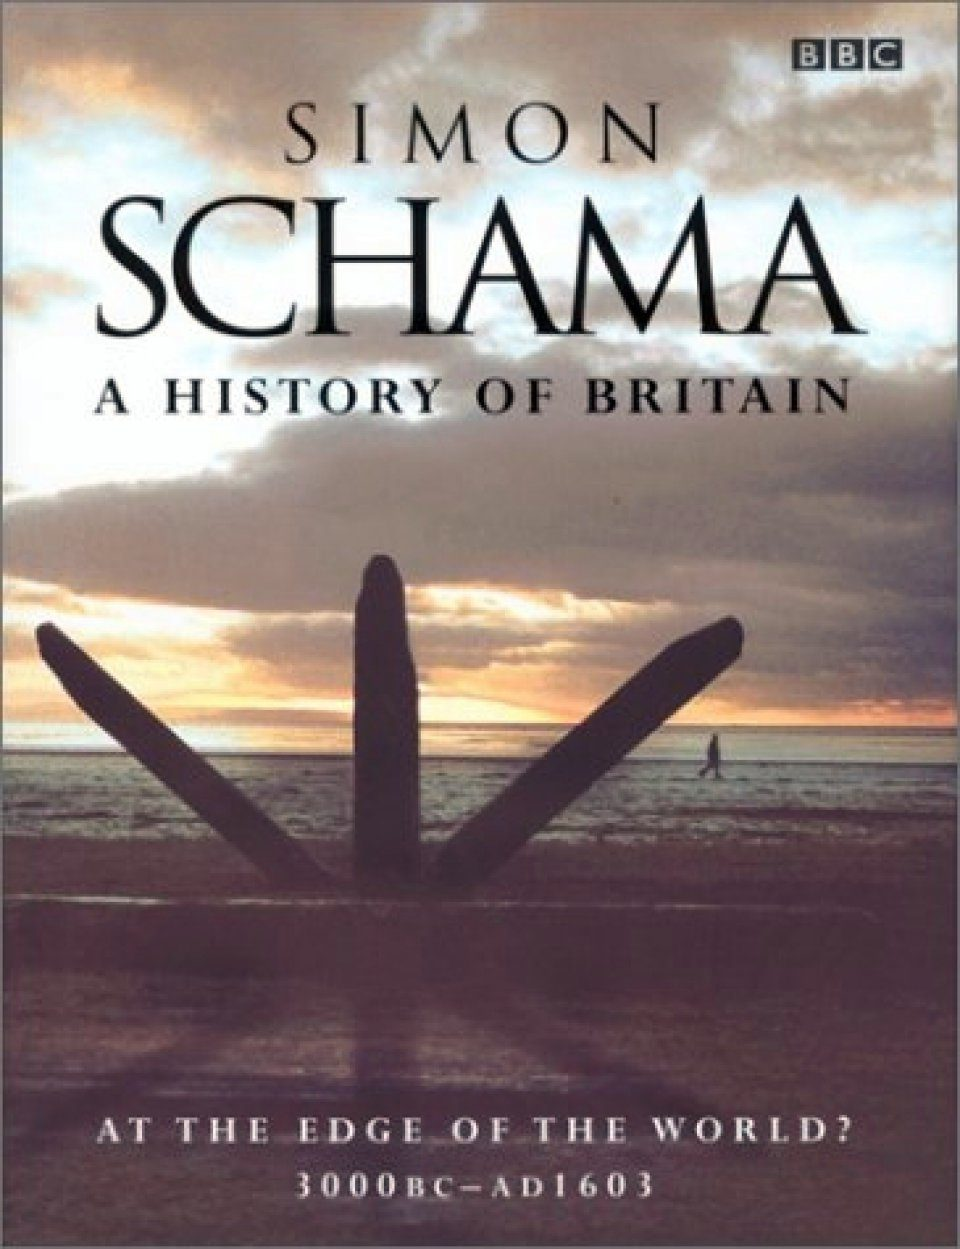 The History of Britain